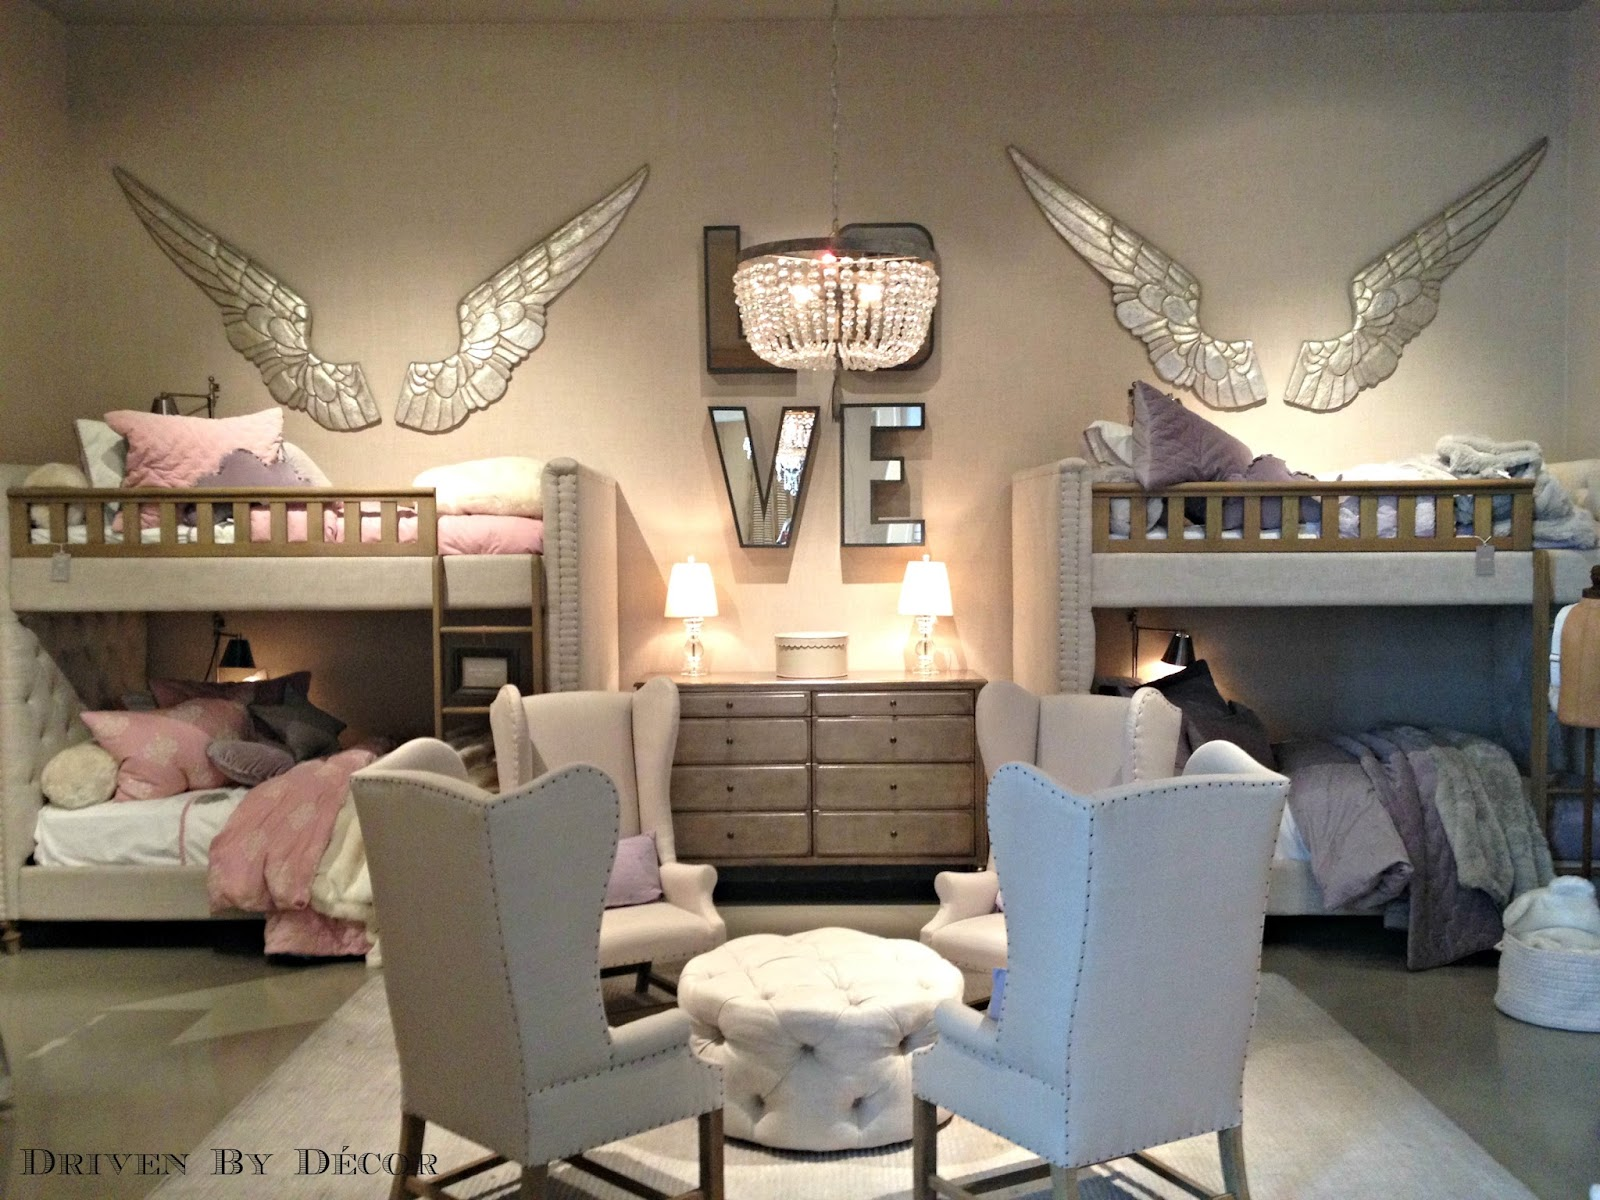 Driven By Décor: Decorating Nurseries & Kids Rooms: Inspiration ...